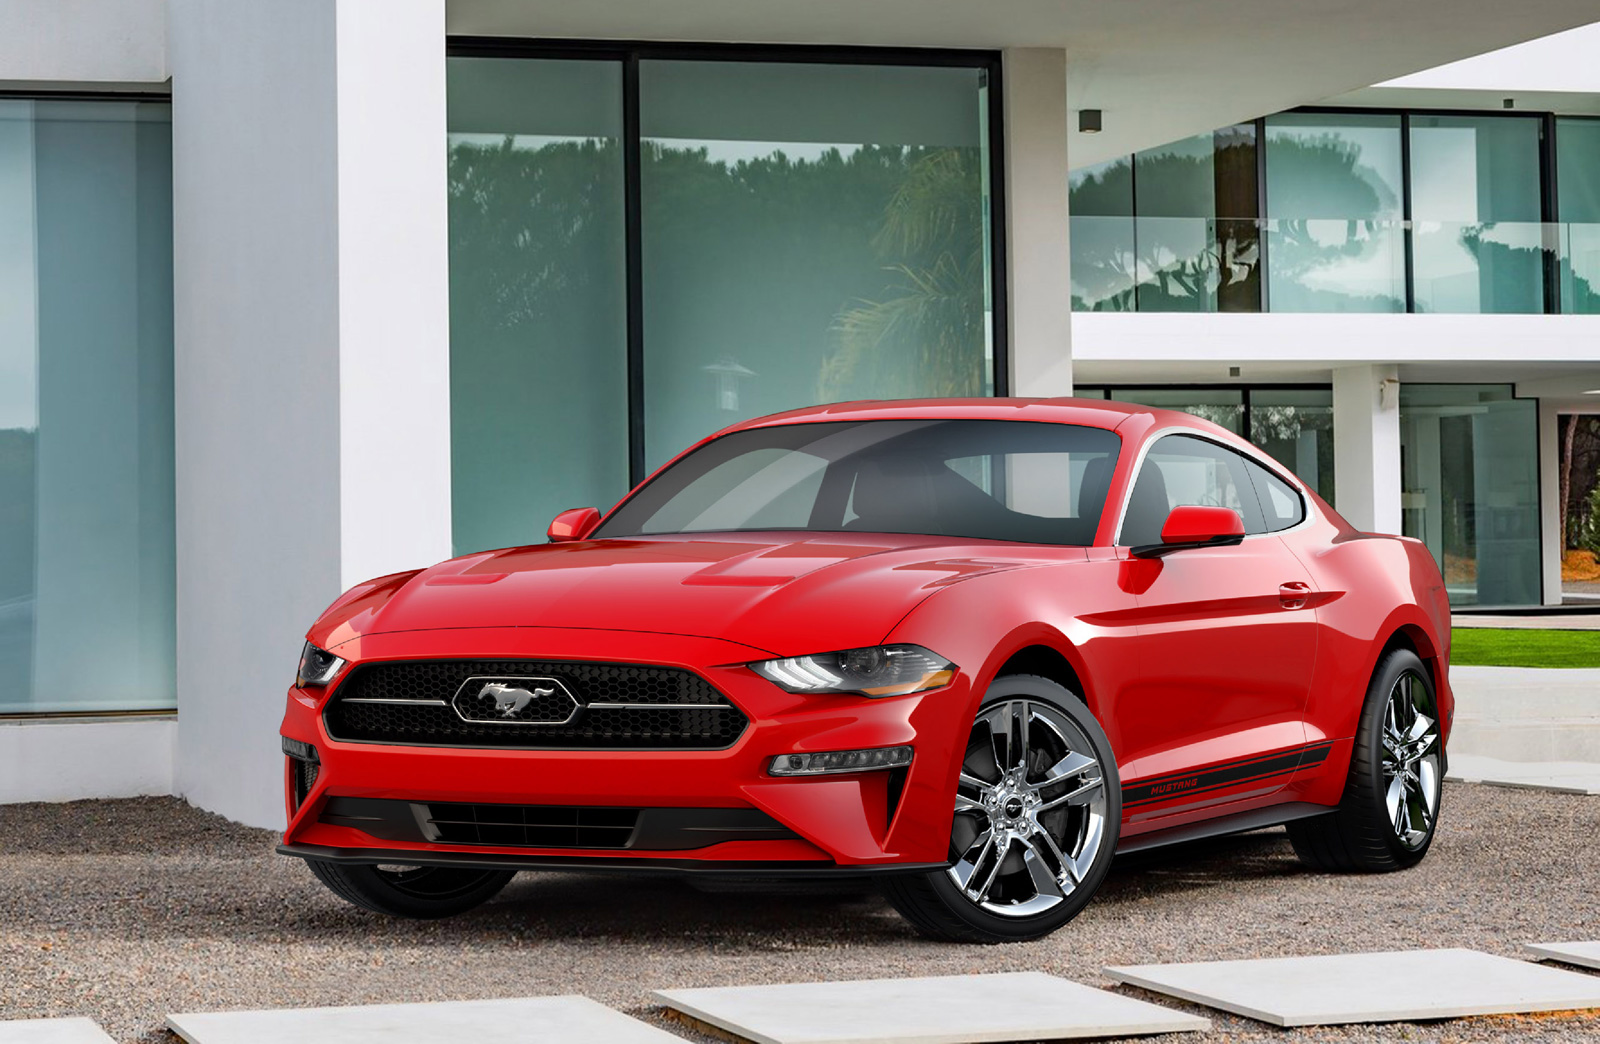 Invoice Model Word Floor Pan  Mustang Maniac Sample Tax Invoice Excel Excel with Example Of Receipt Of Payment The Front Badge Is Like The Iconic Mustang Logo From  Years Ago  Surrounded In A Chrome Corral The Badge Design First Appeared In The  Mids And Has  Donation Receipt Example Word